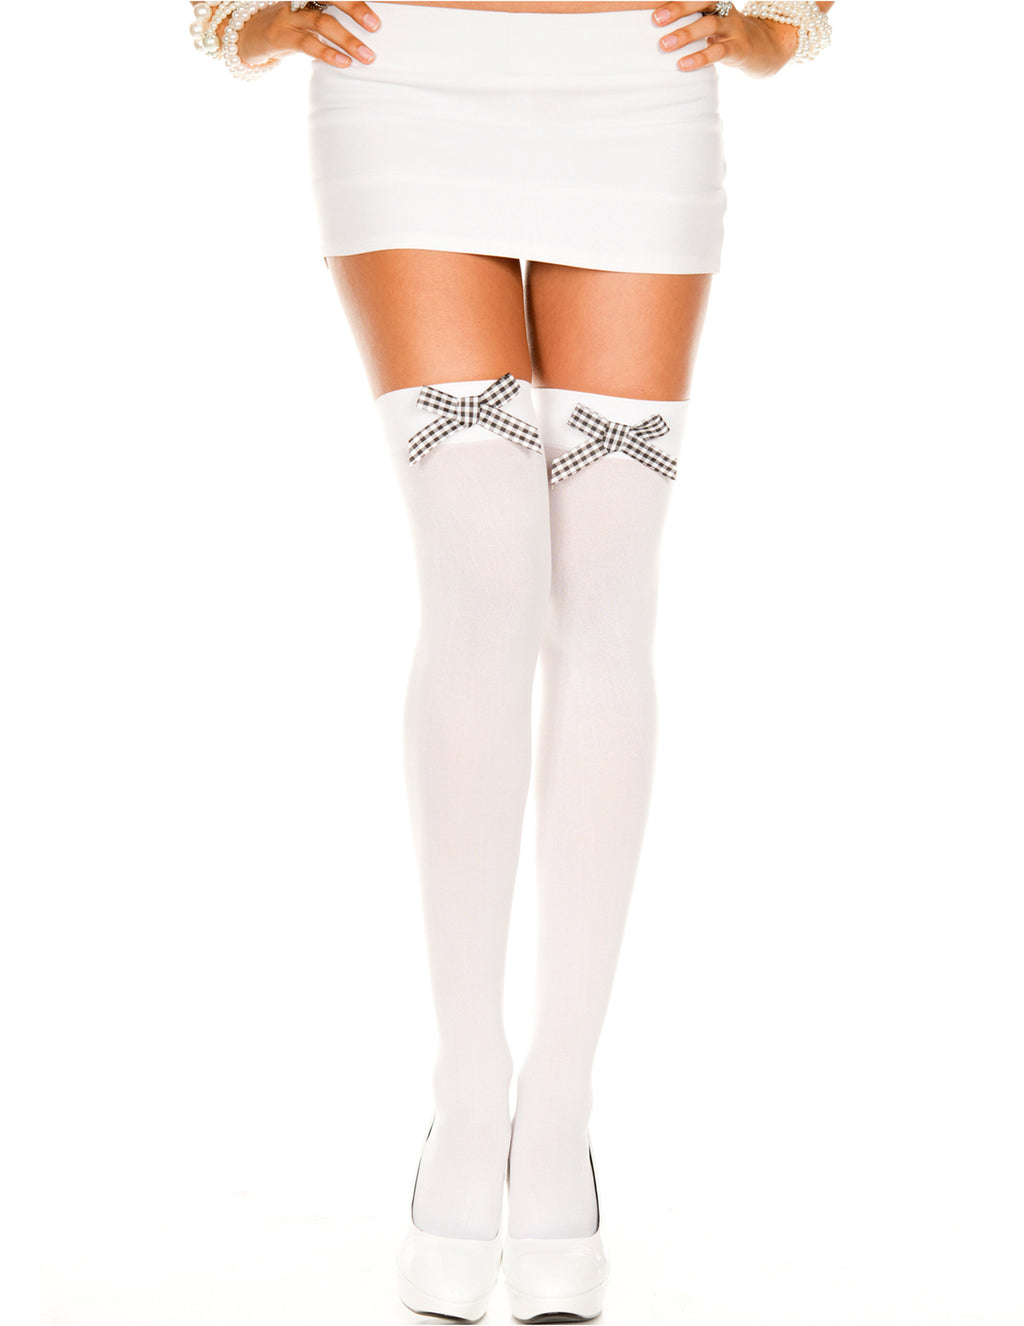 White Opaque Thigh High Stockings with Black and White Checker Bow, One Size